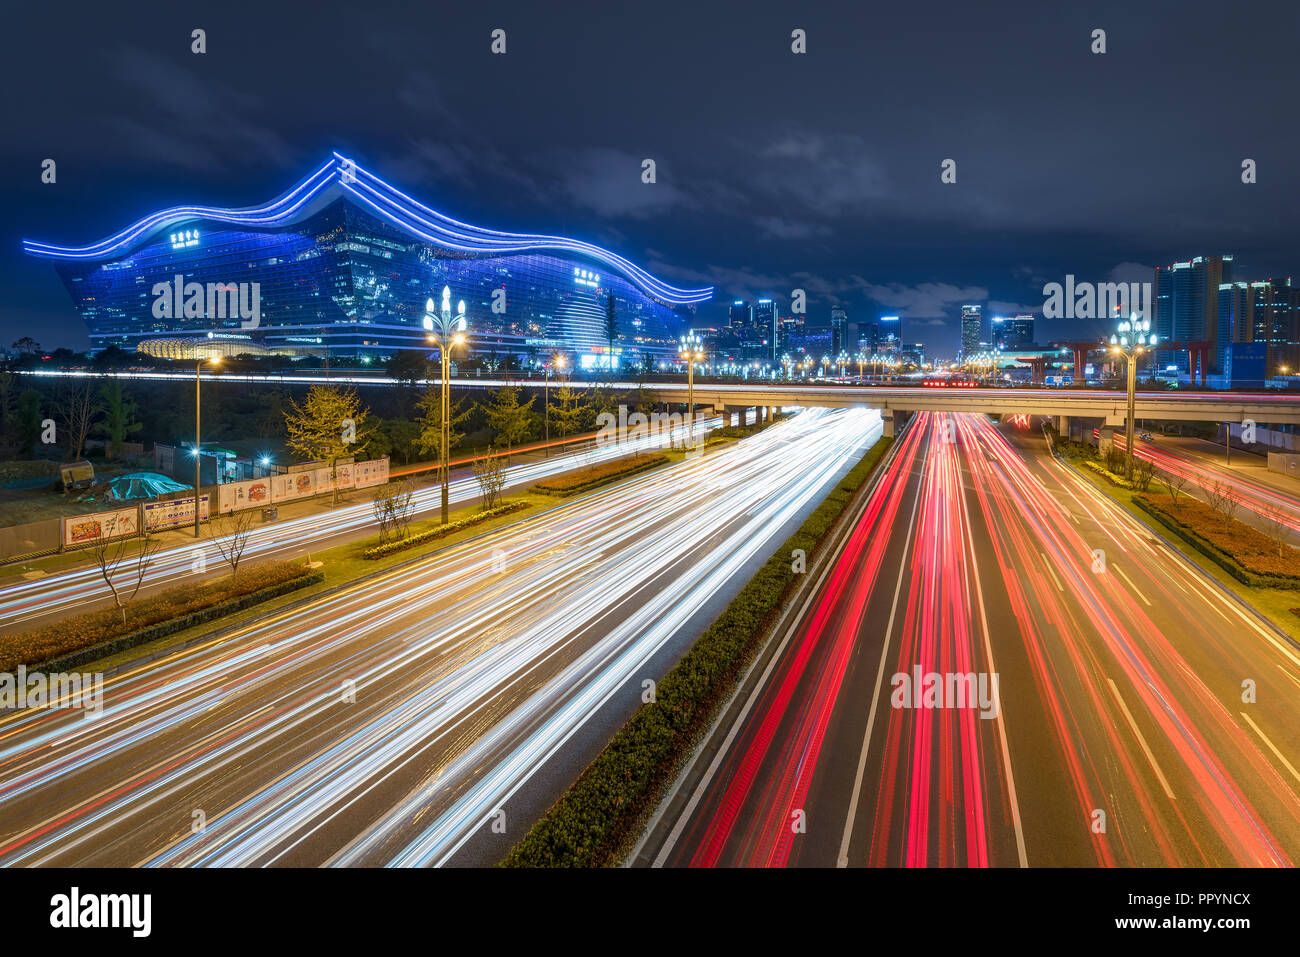 Chengdu, Sichuan province, China - Sept 27, 2018: Traffic light trails on Tianfu avenue at night with illuminated New Century Global Center in the background Stock Photo